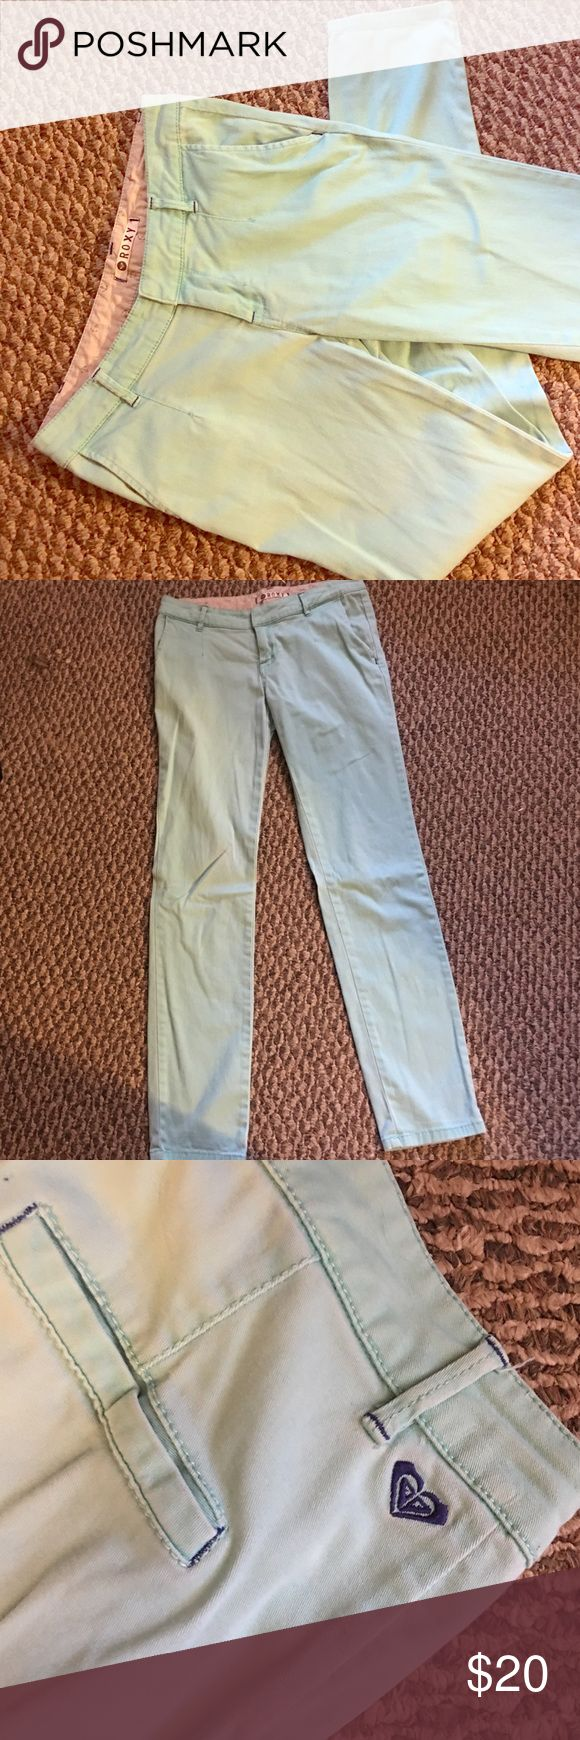 """Roxy """"chino"""" pants Super cute real or turquoise pants! It had a missing button but still latches with the silver clip. Can be easily fixed if you have extra buttons. Other than that they are in excellent condition and can be dressed up or casual. Smoke free home and discounts on bundles 💕 Roxy Pants Skinny"""